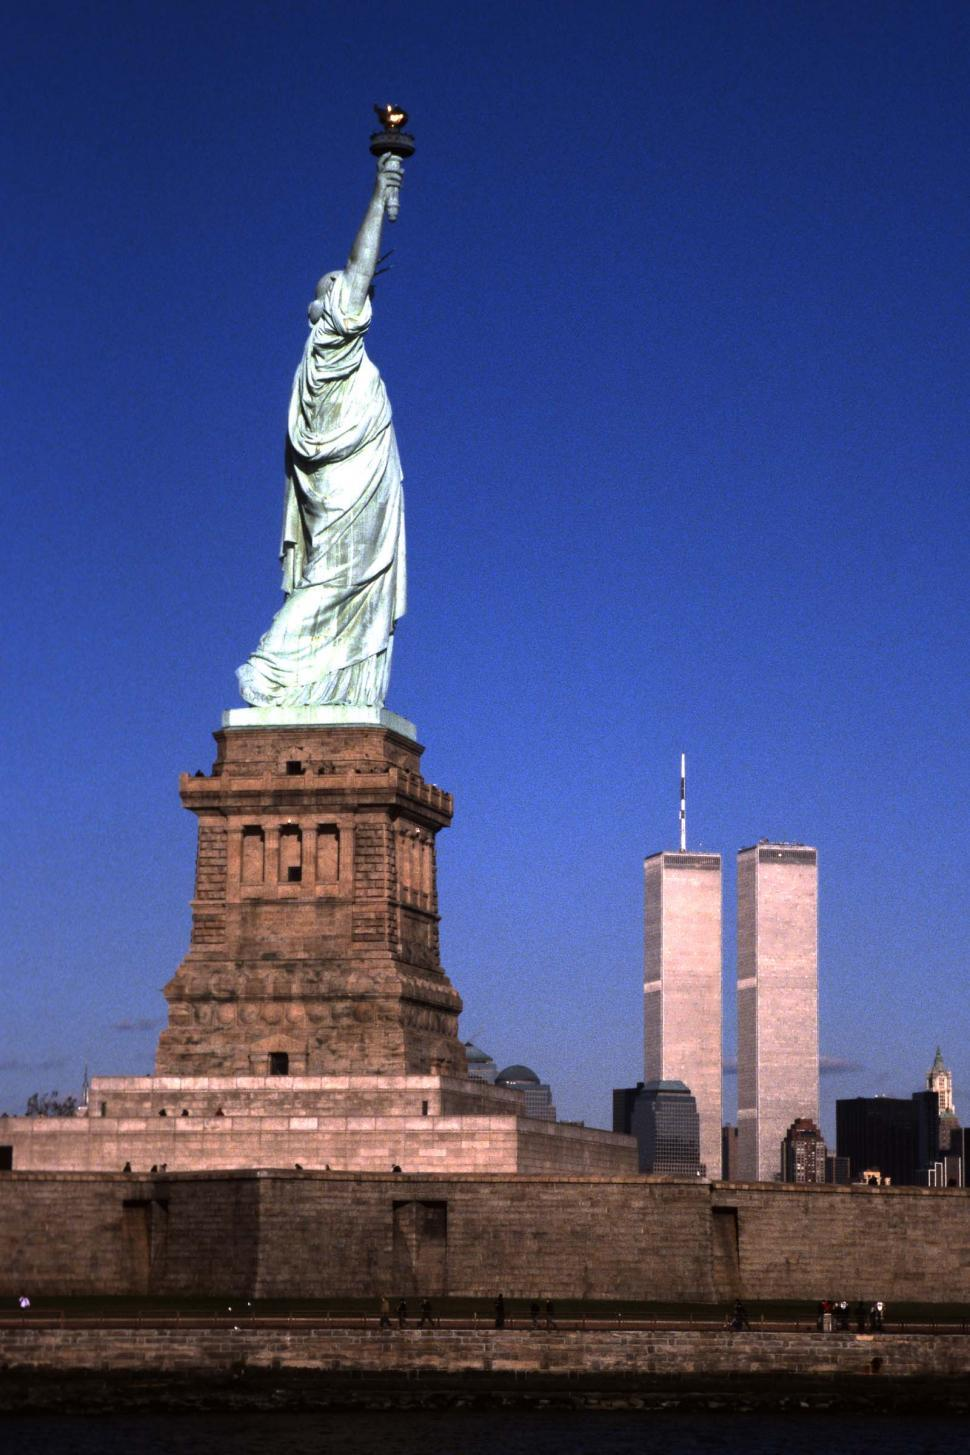 Download Free Stock HD Photo of Twin towers and Statue of Liberty Online